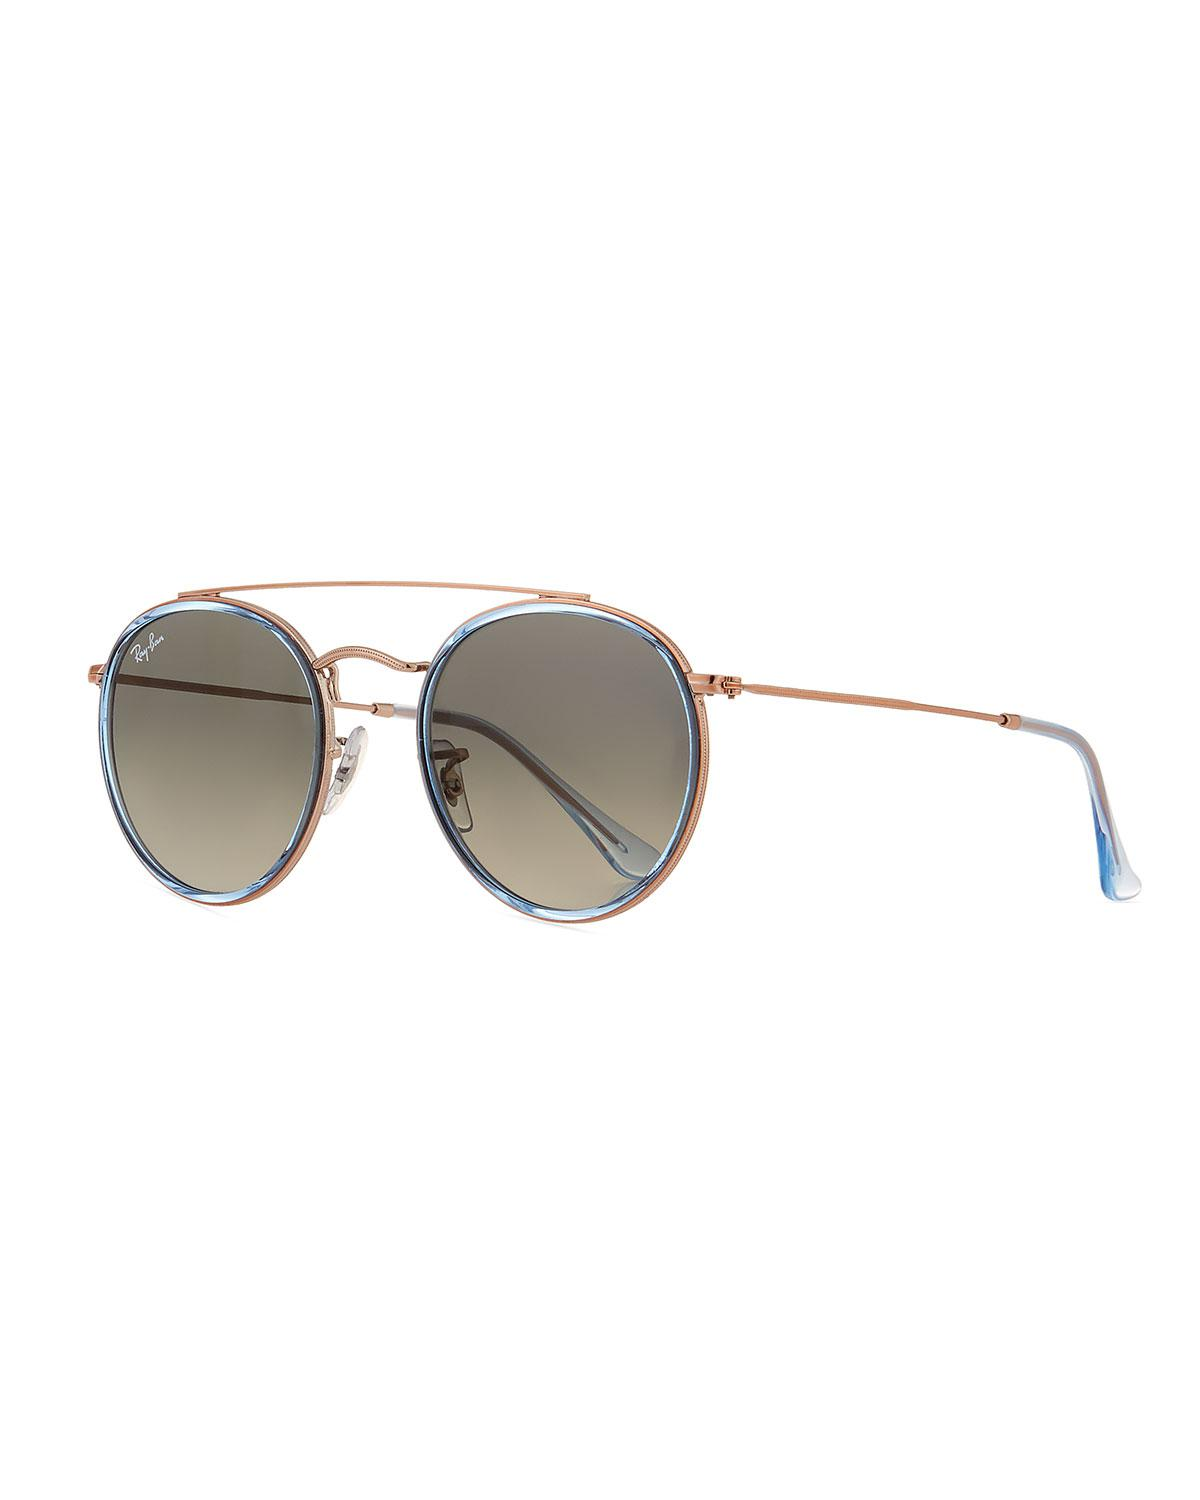 abdf42deb1 Lyst - Ray-Ban Rb3647 Round Metal Sunglasses in Blue for Men